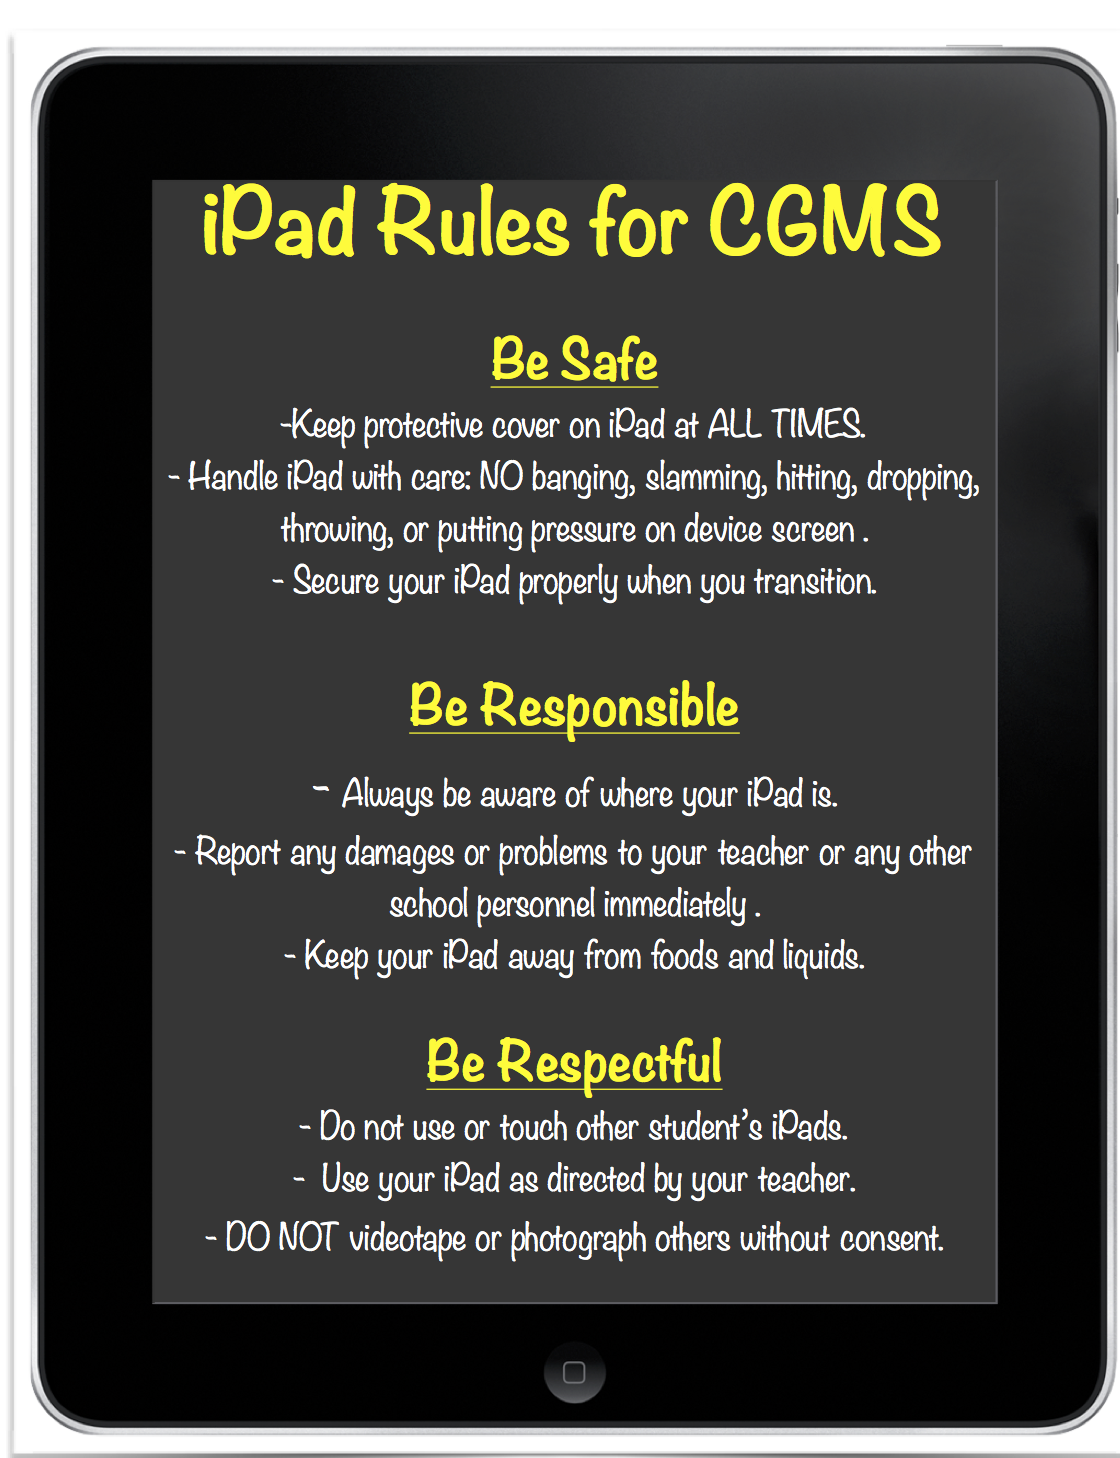 ipad rules - be safe, be responsible, be respectful